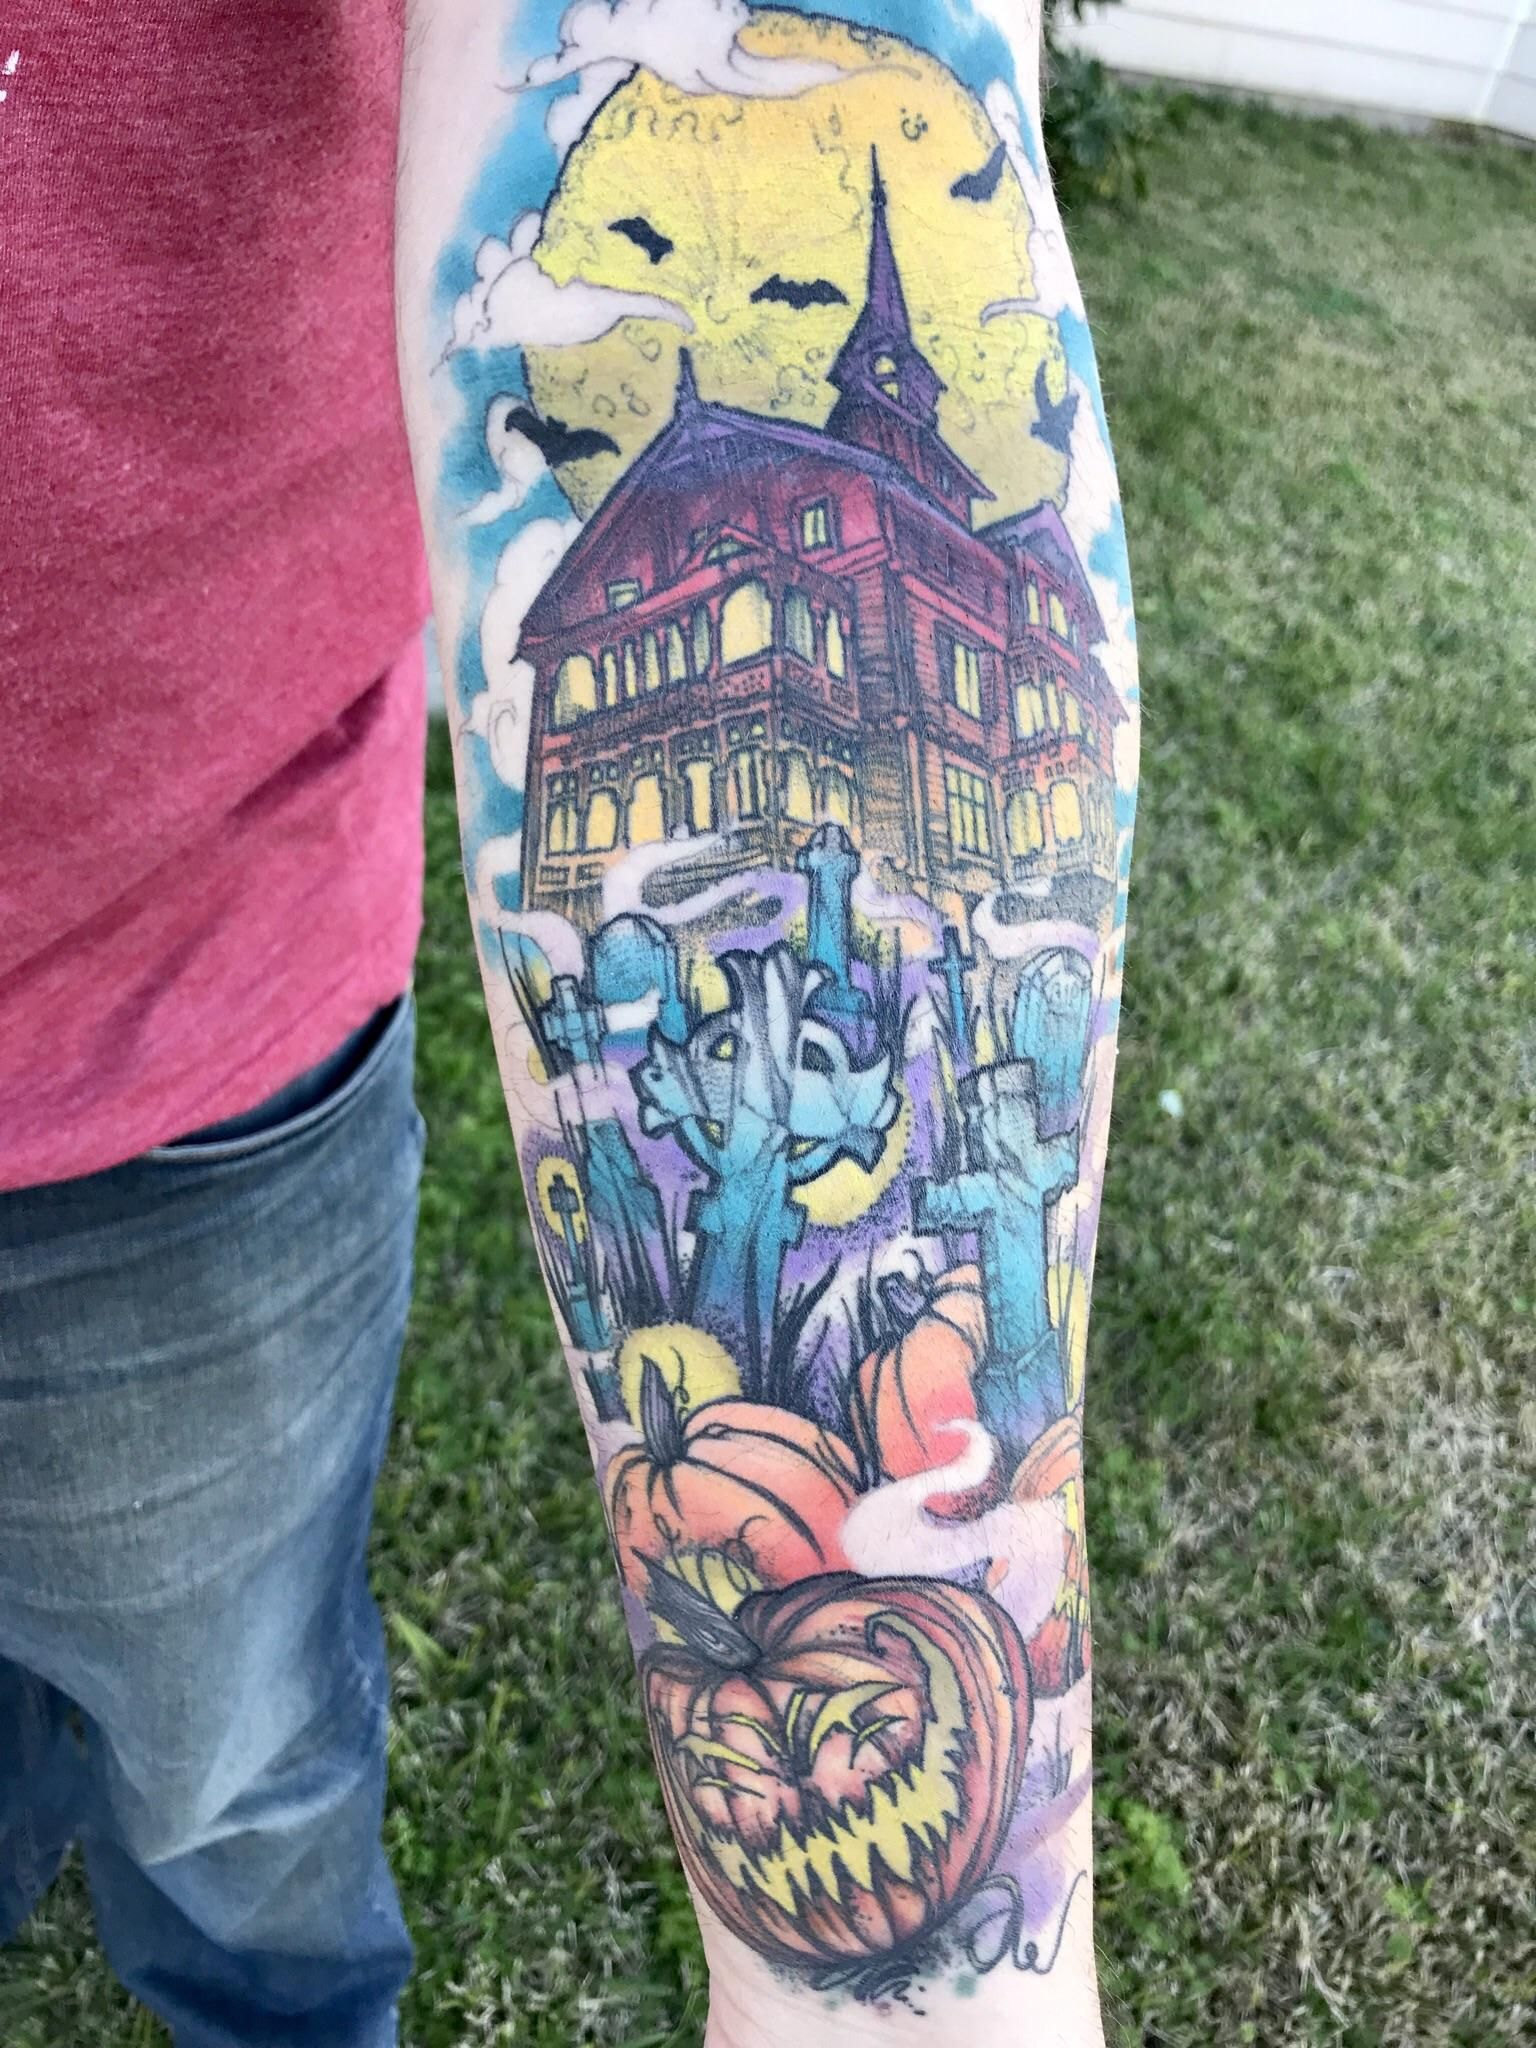 Haunted house done by kristina gray at mainline ink in